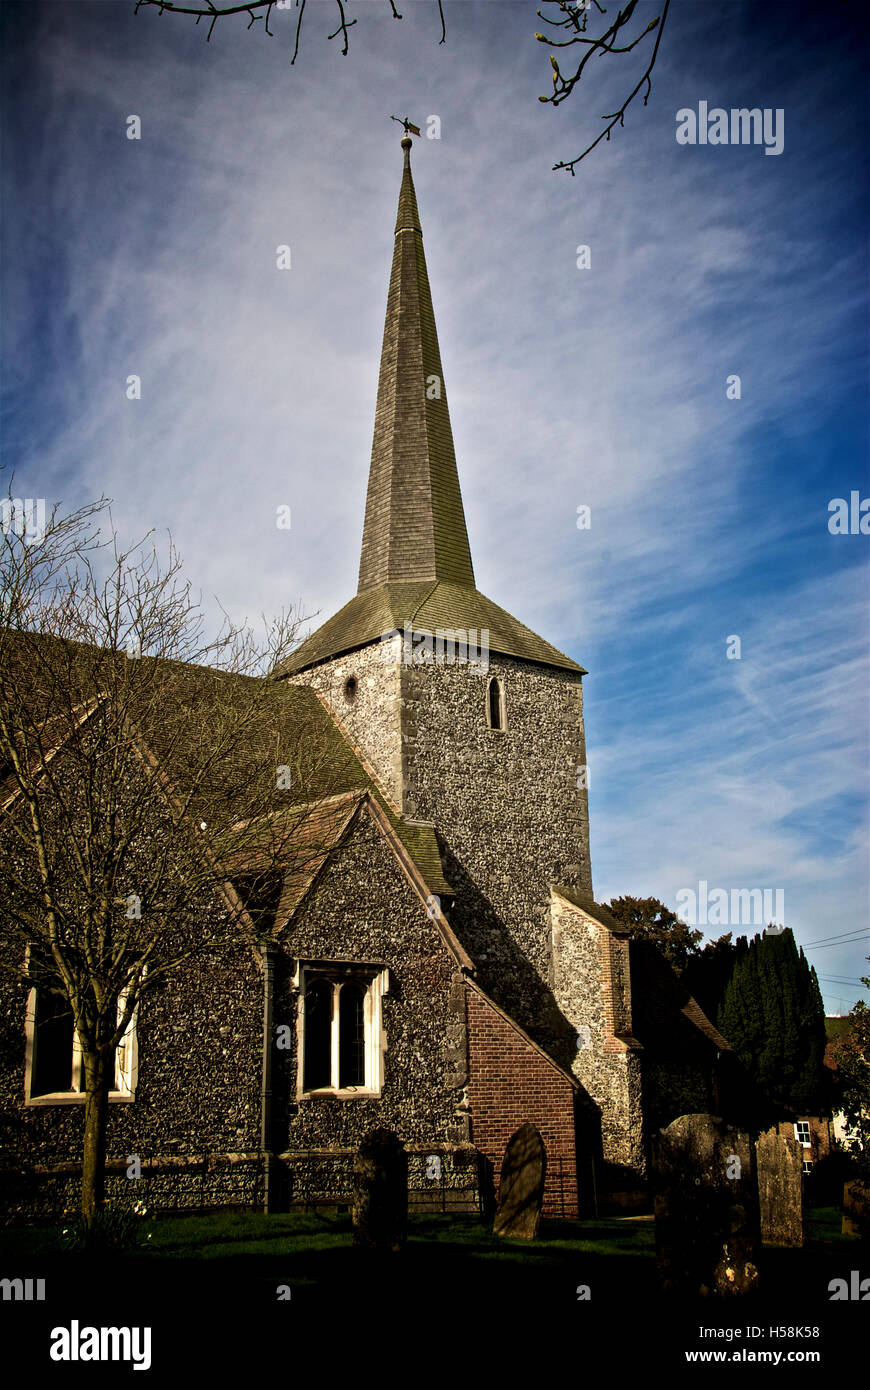 Eynsford St Martin's church Stock Photo